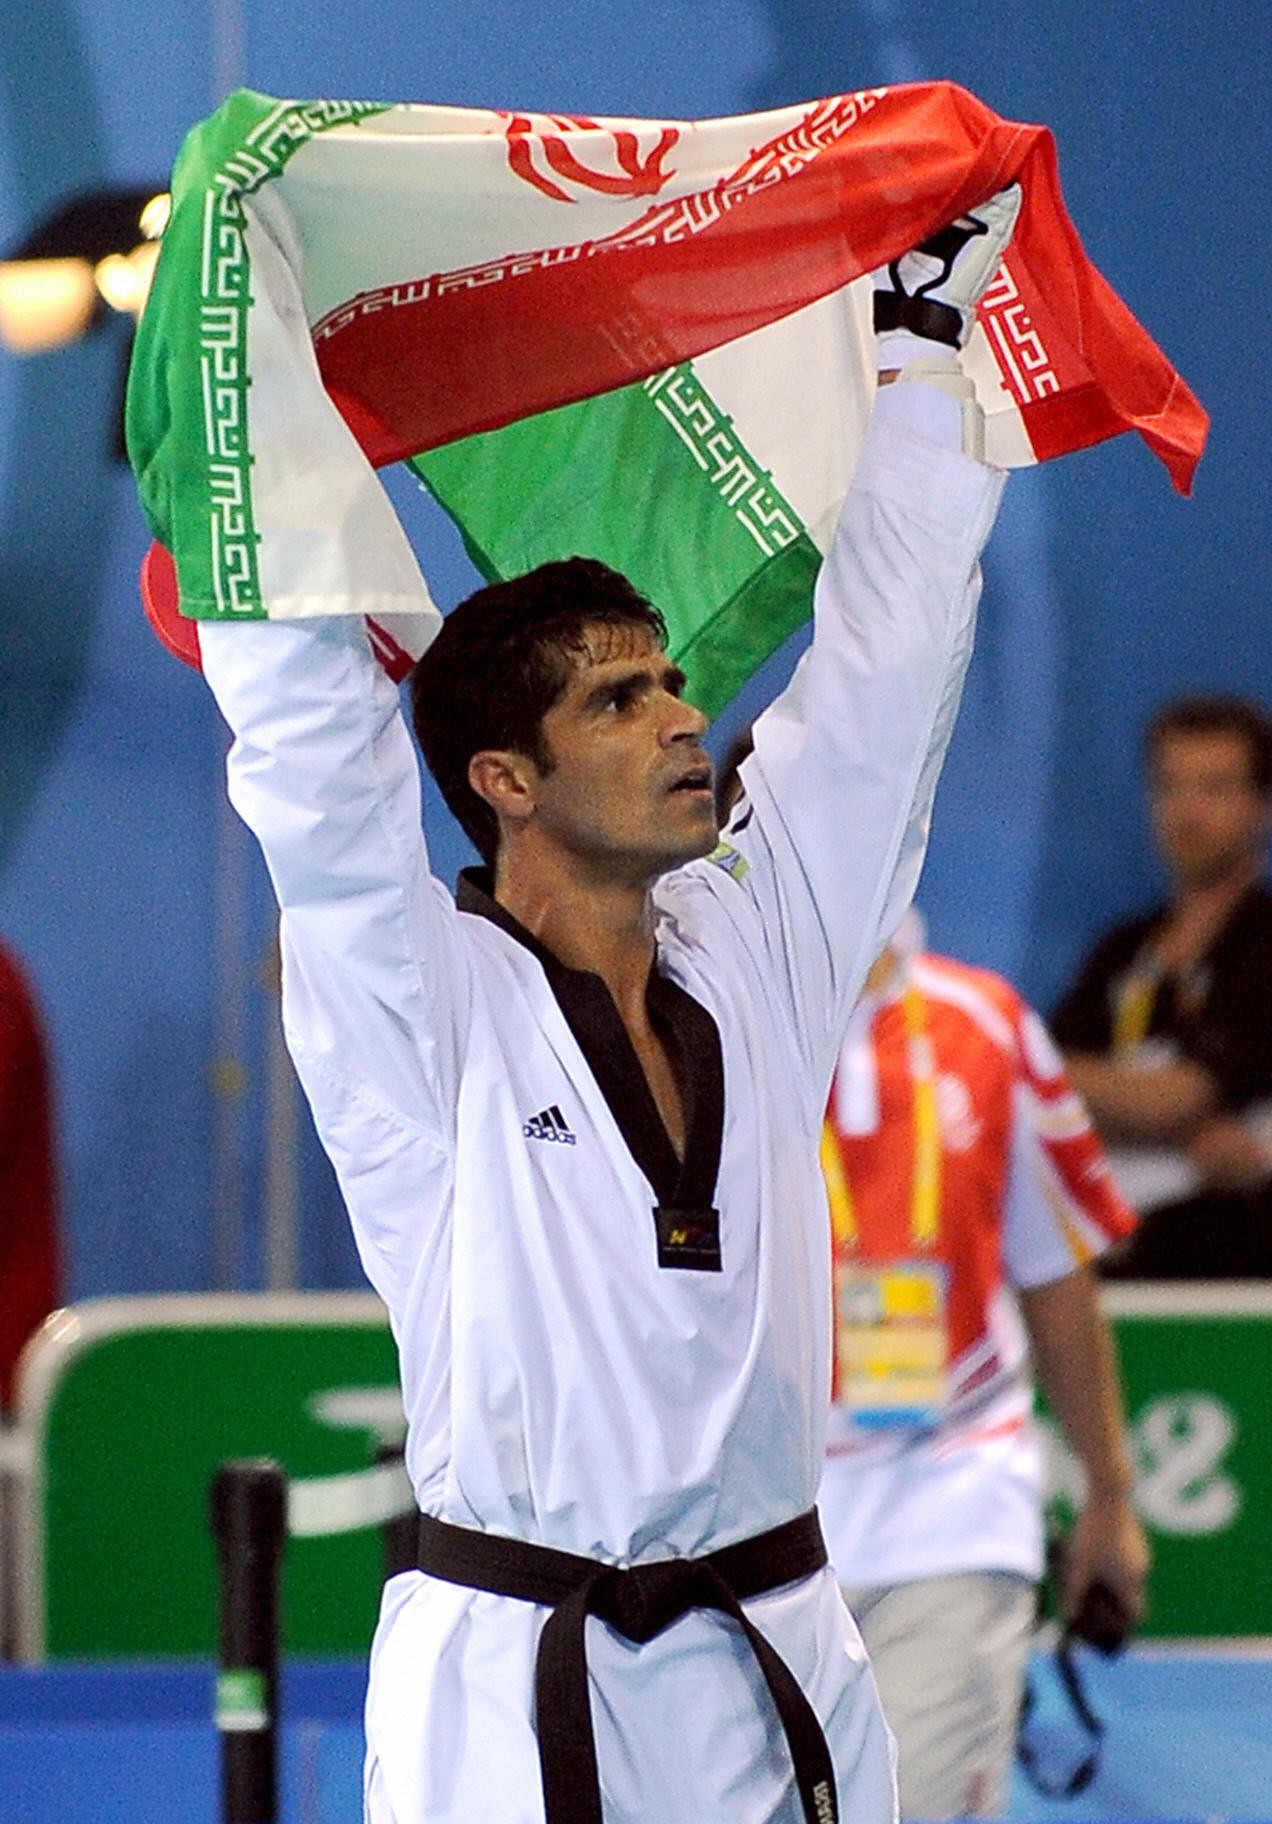 Hadi Saei is Iran's most decorated Olympian  ©Getty Images